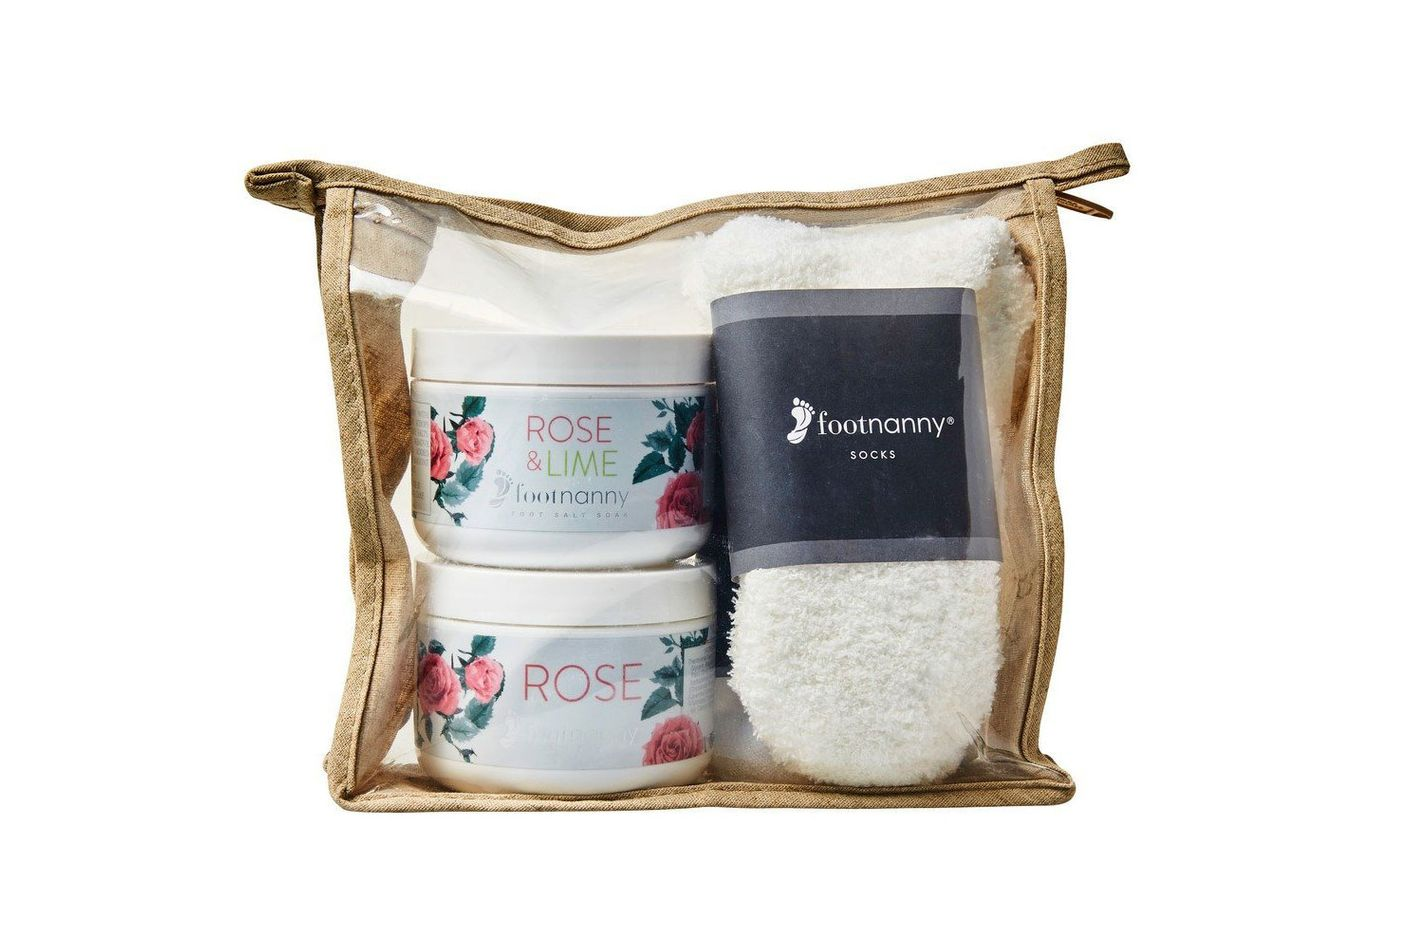 Footnanny Rose Treatment Gift Set